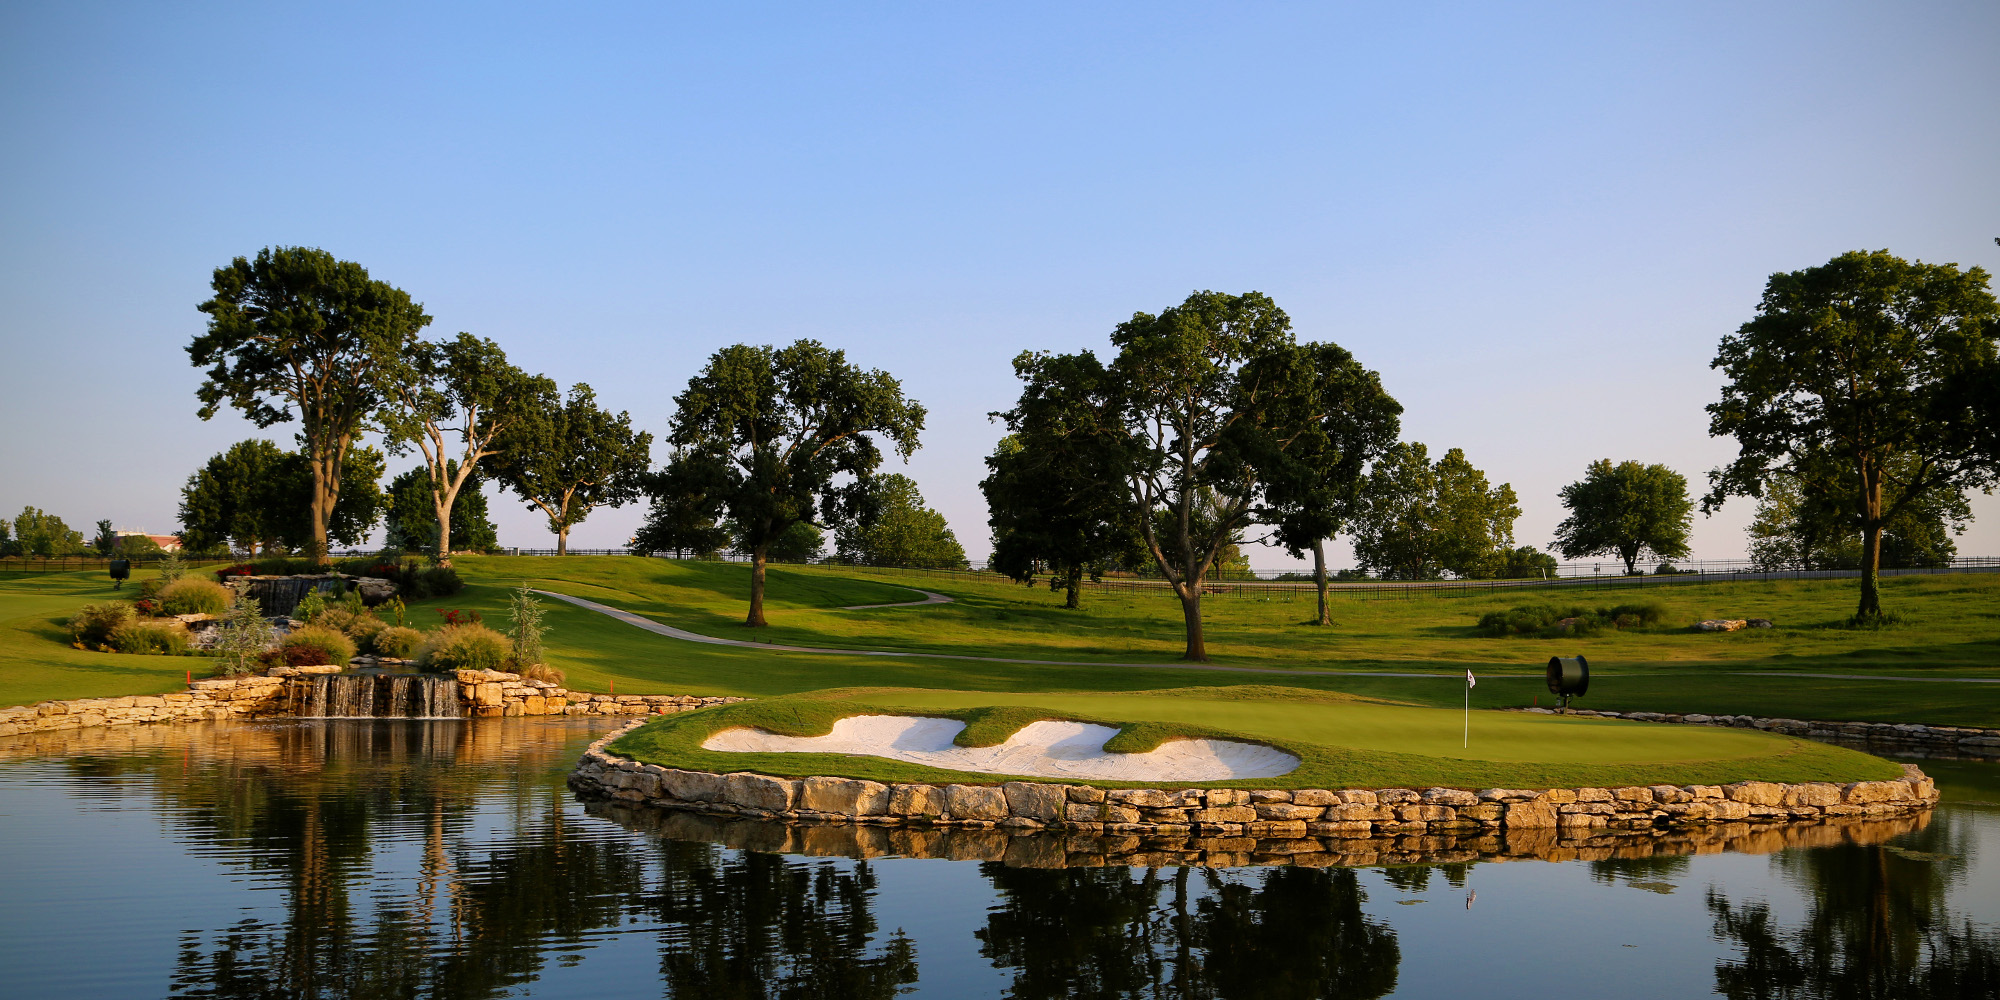 Golf Grand Lake in Grove, Oklahoma